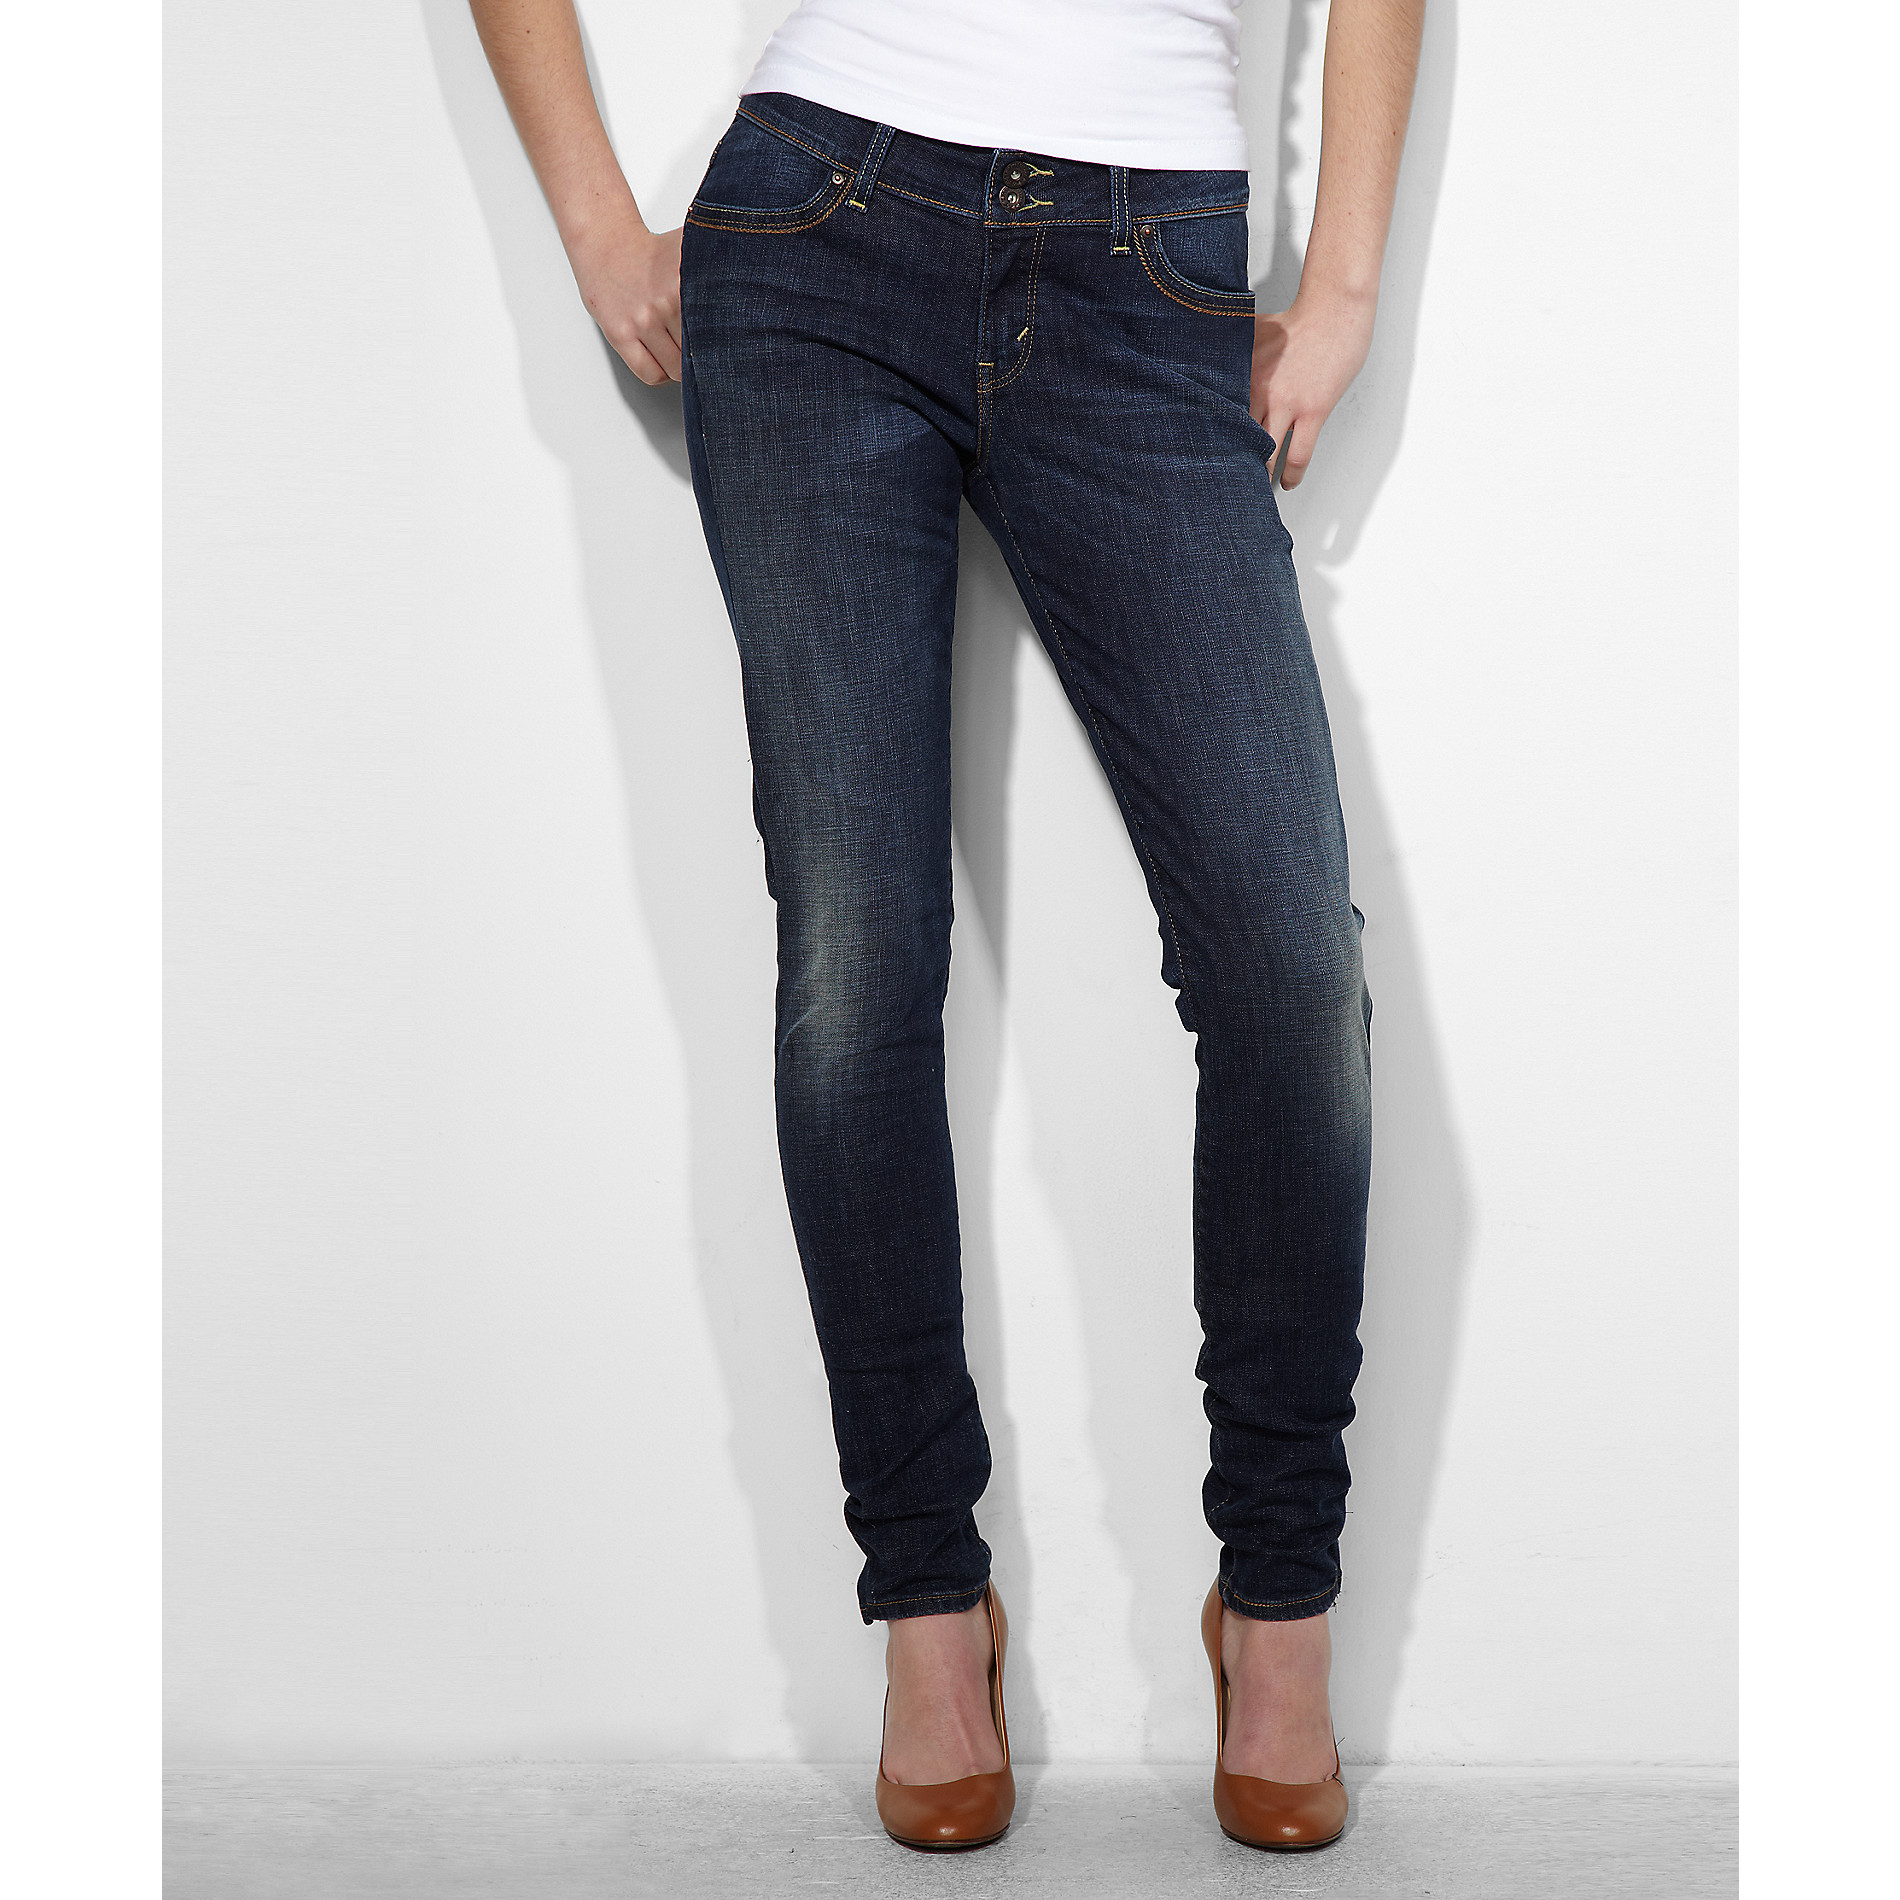 Levi's Women's Curvy Skinny Glacier Denim Jeans at Sears.com